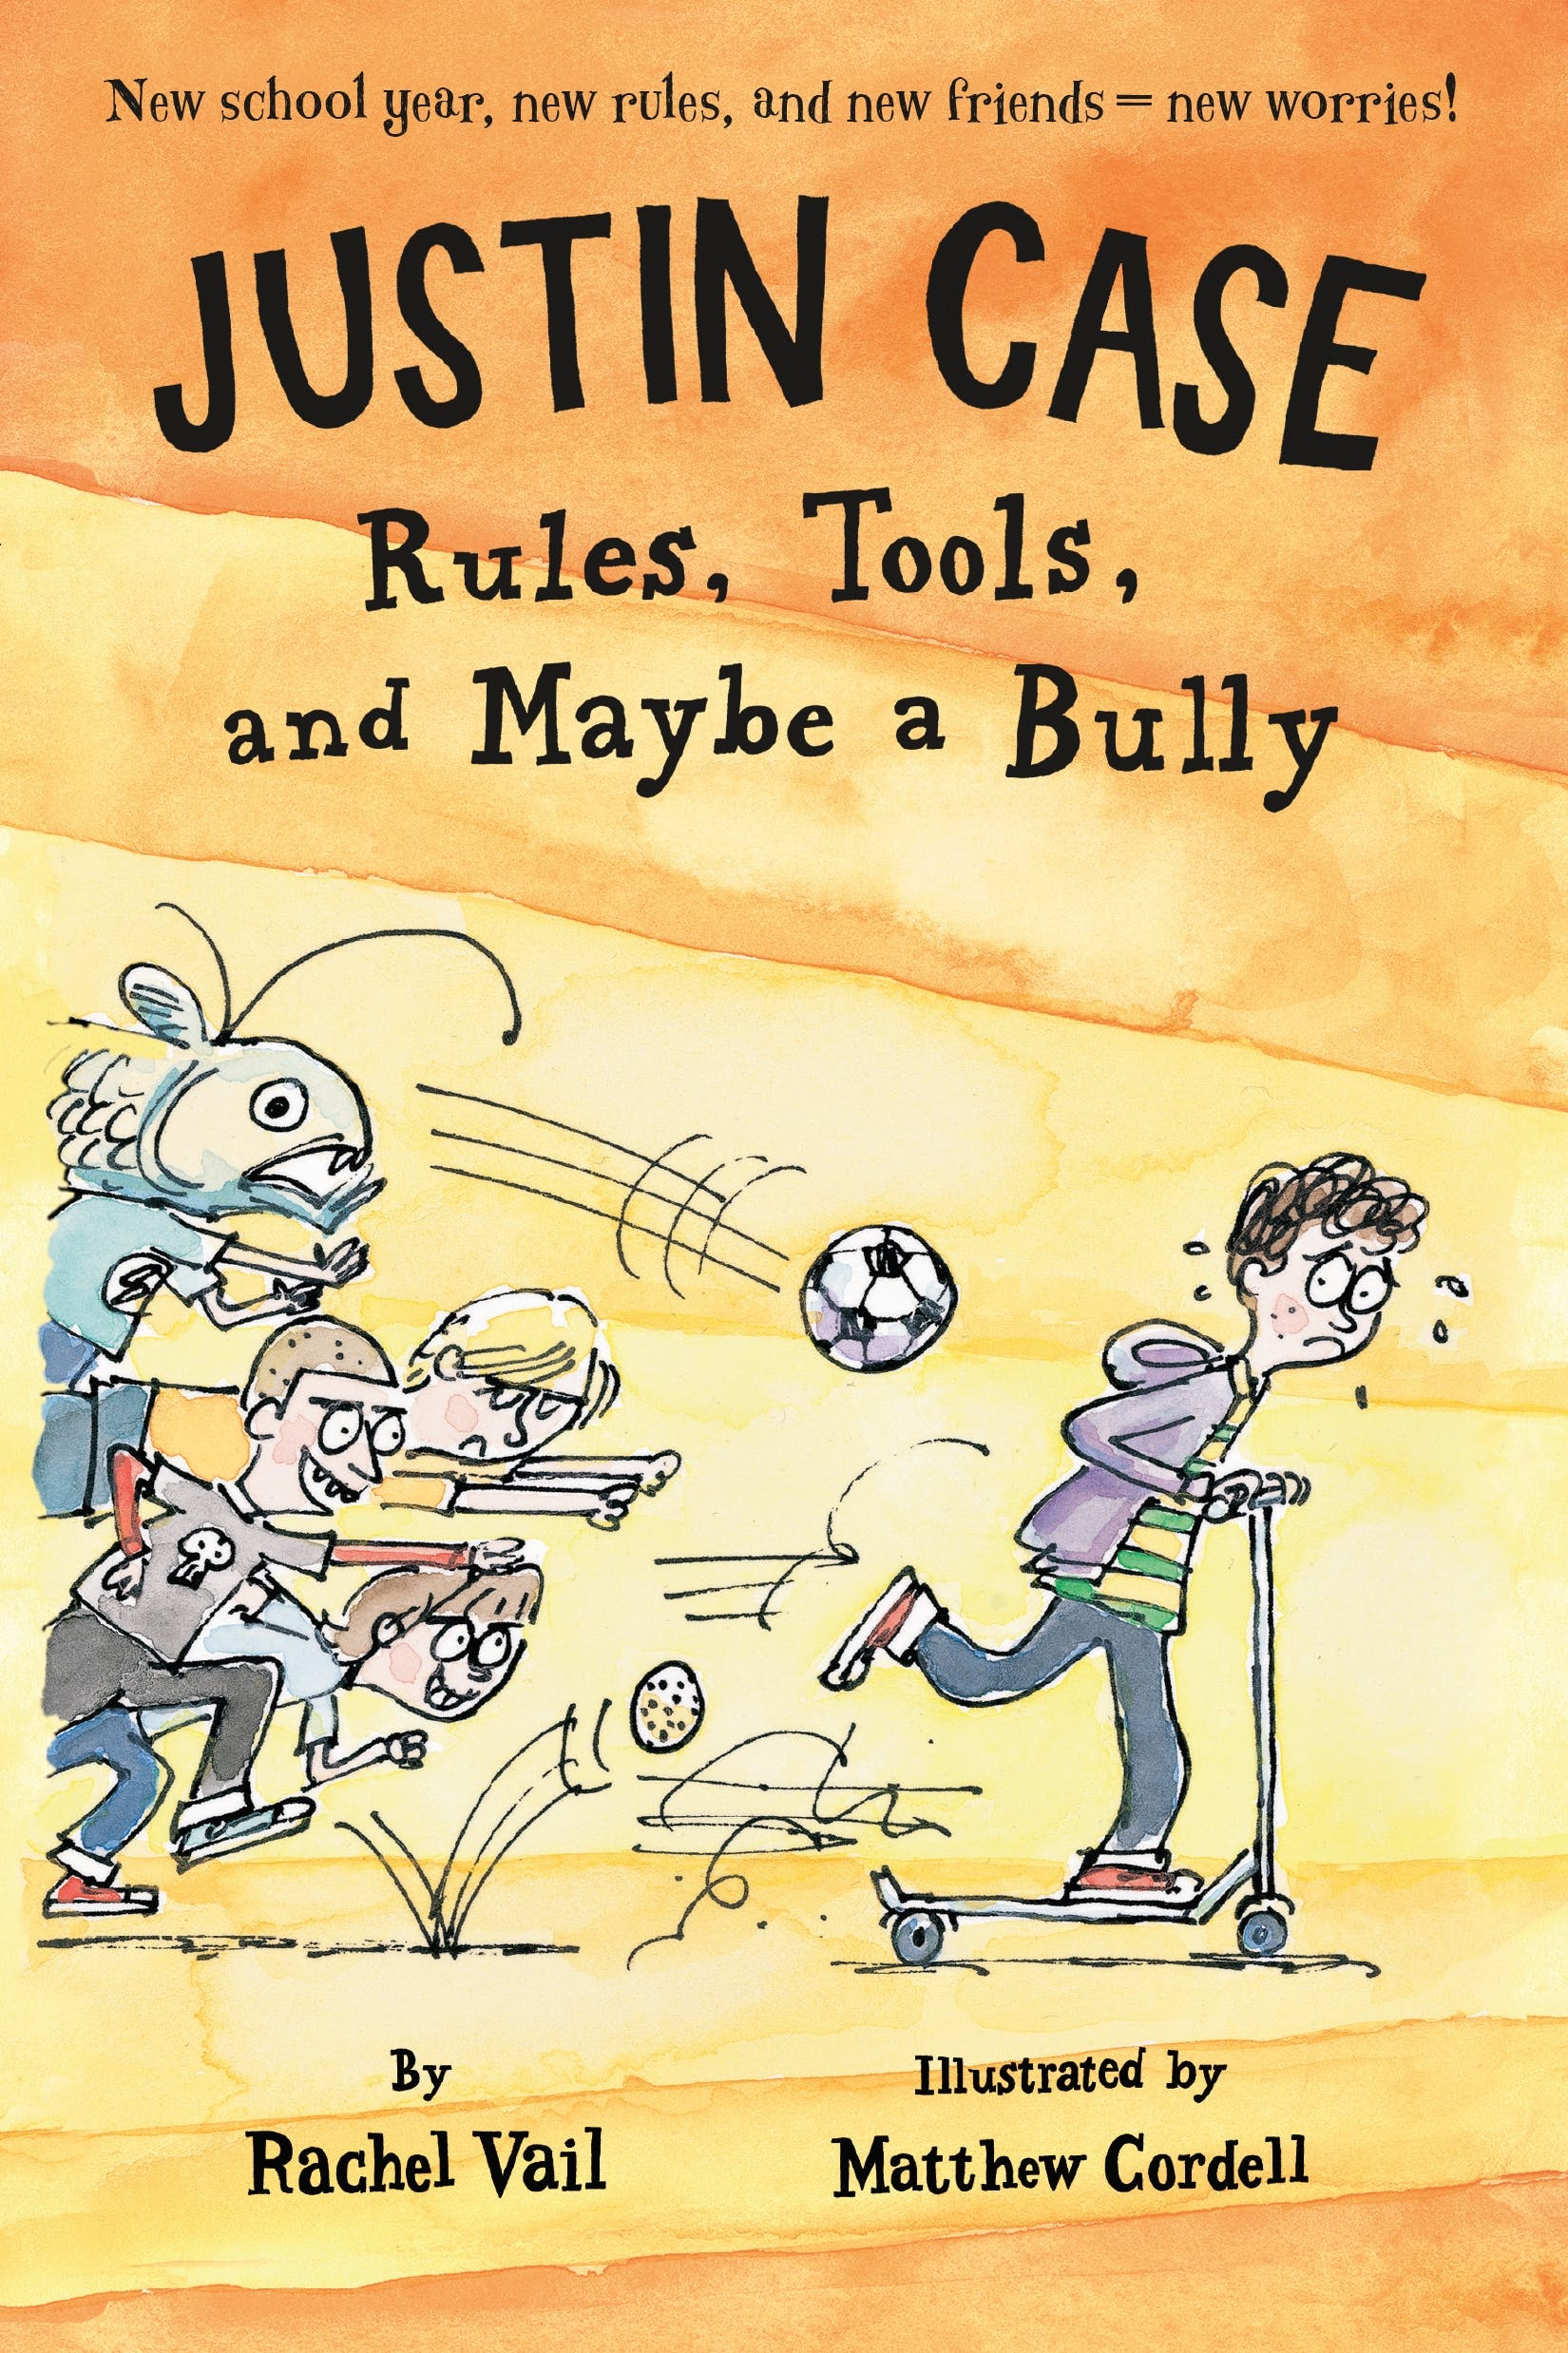 Image of Justin Case: Rules, Tools, and Maybe a Bully